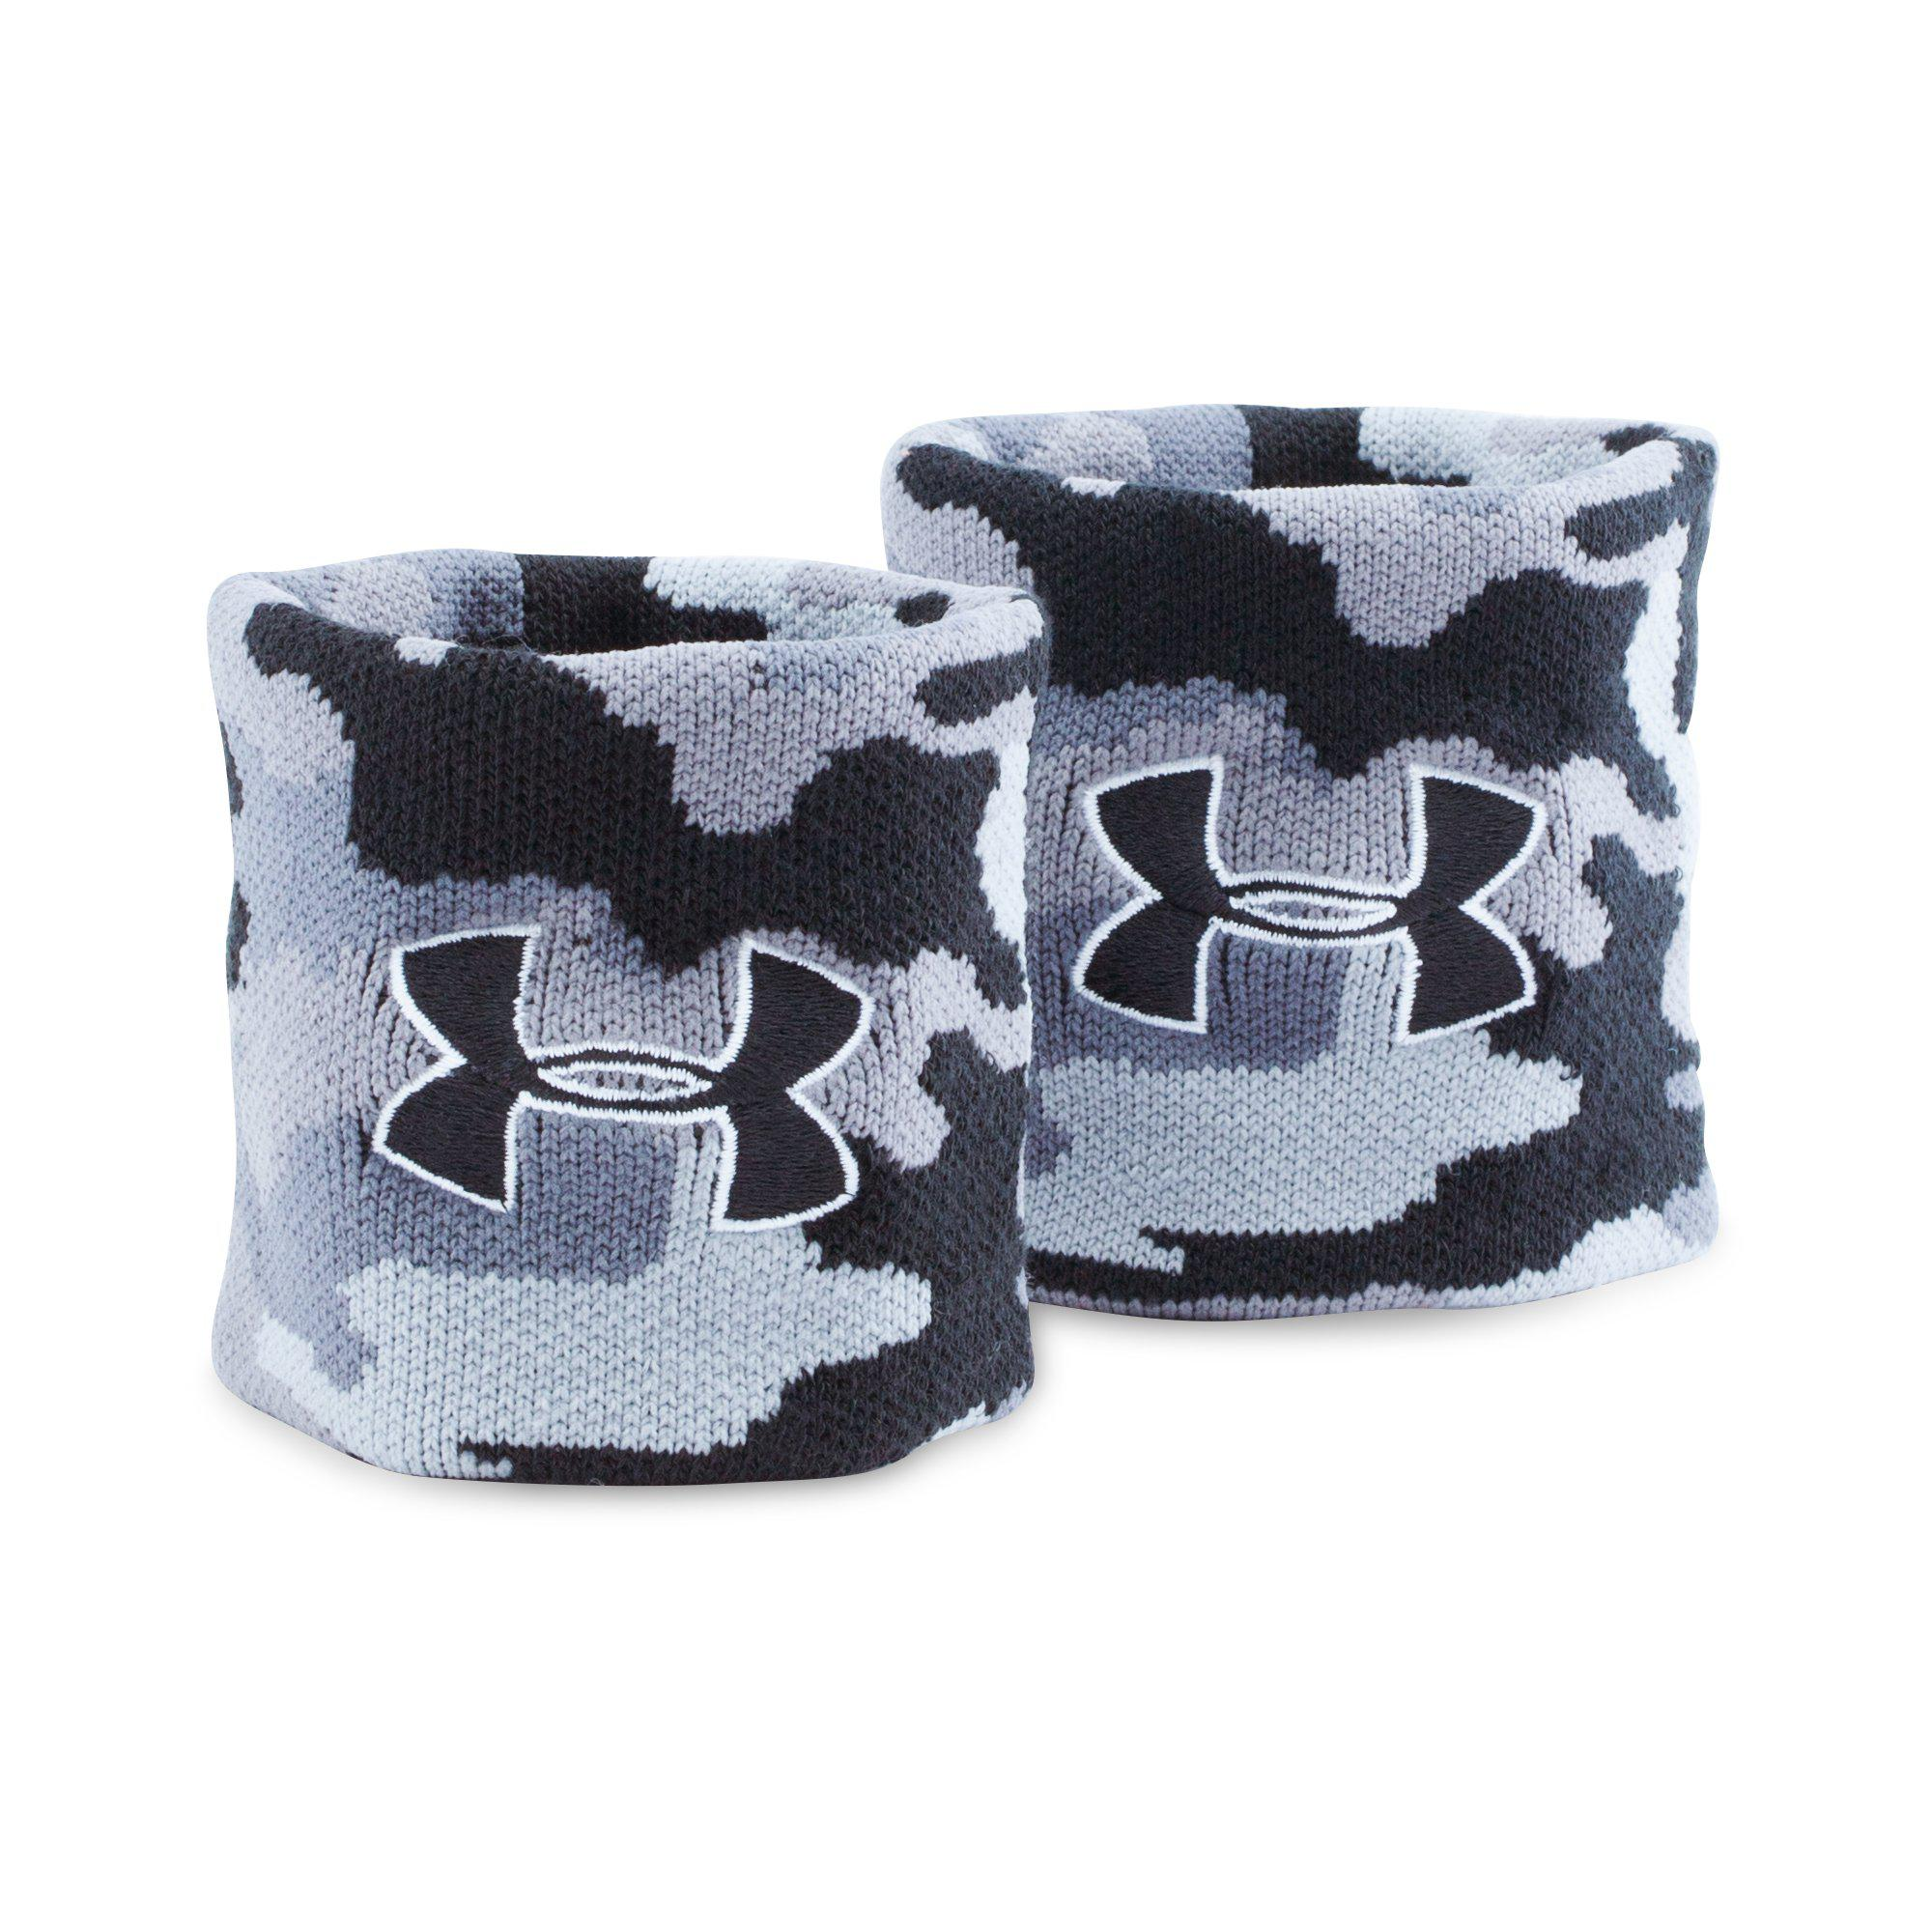 Under Armour Polsini Camouflage Grigio (2x)